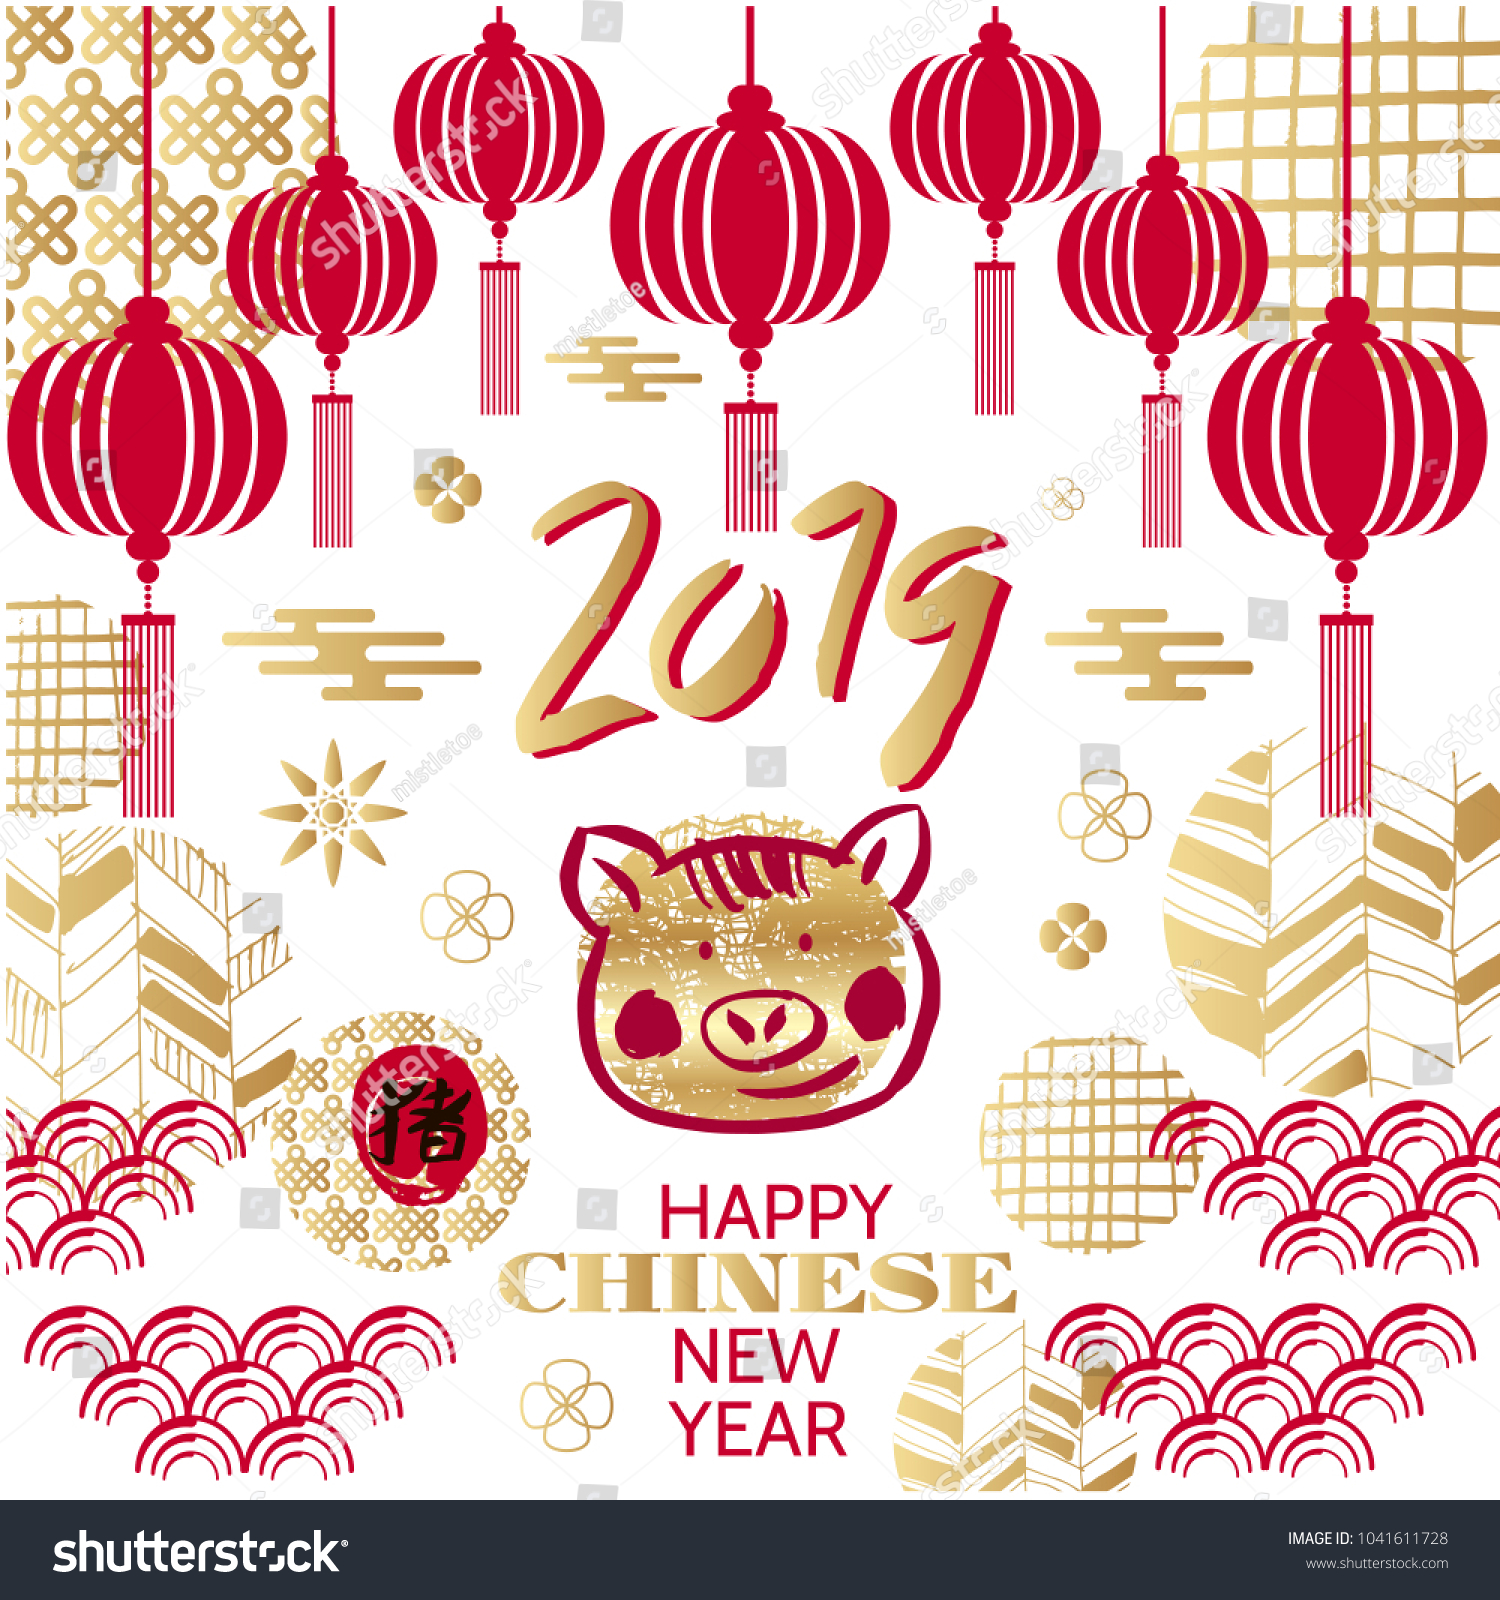 Chinese pig symbol gallery symbol and sign ideas happy chinese new year year pig stock vector 1041611728 shutterstock happy chinese new year year of buycottarizona Gallery